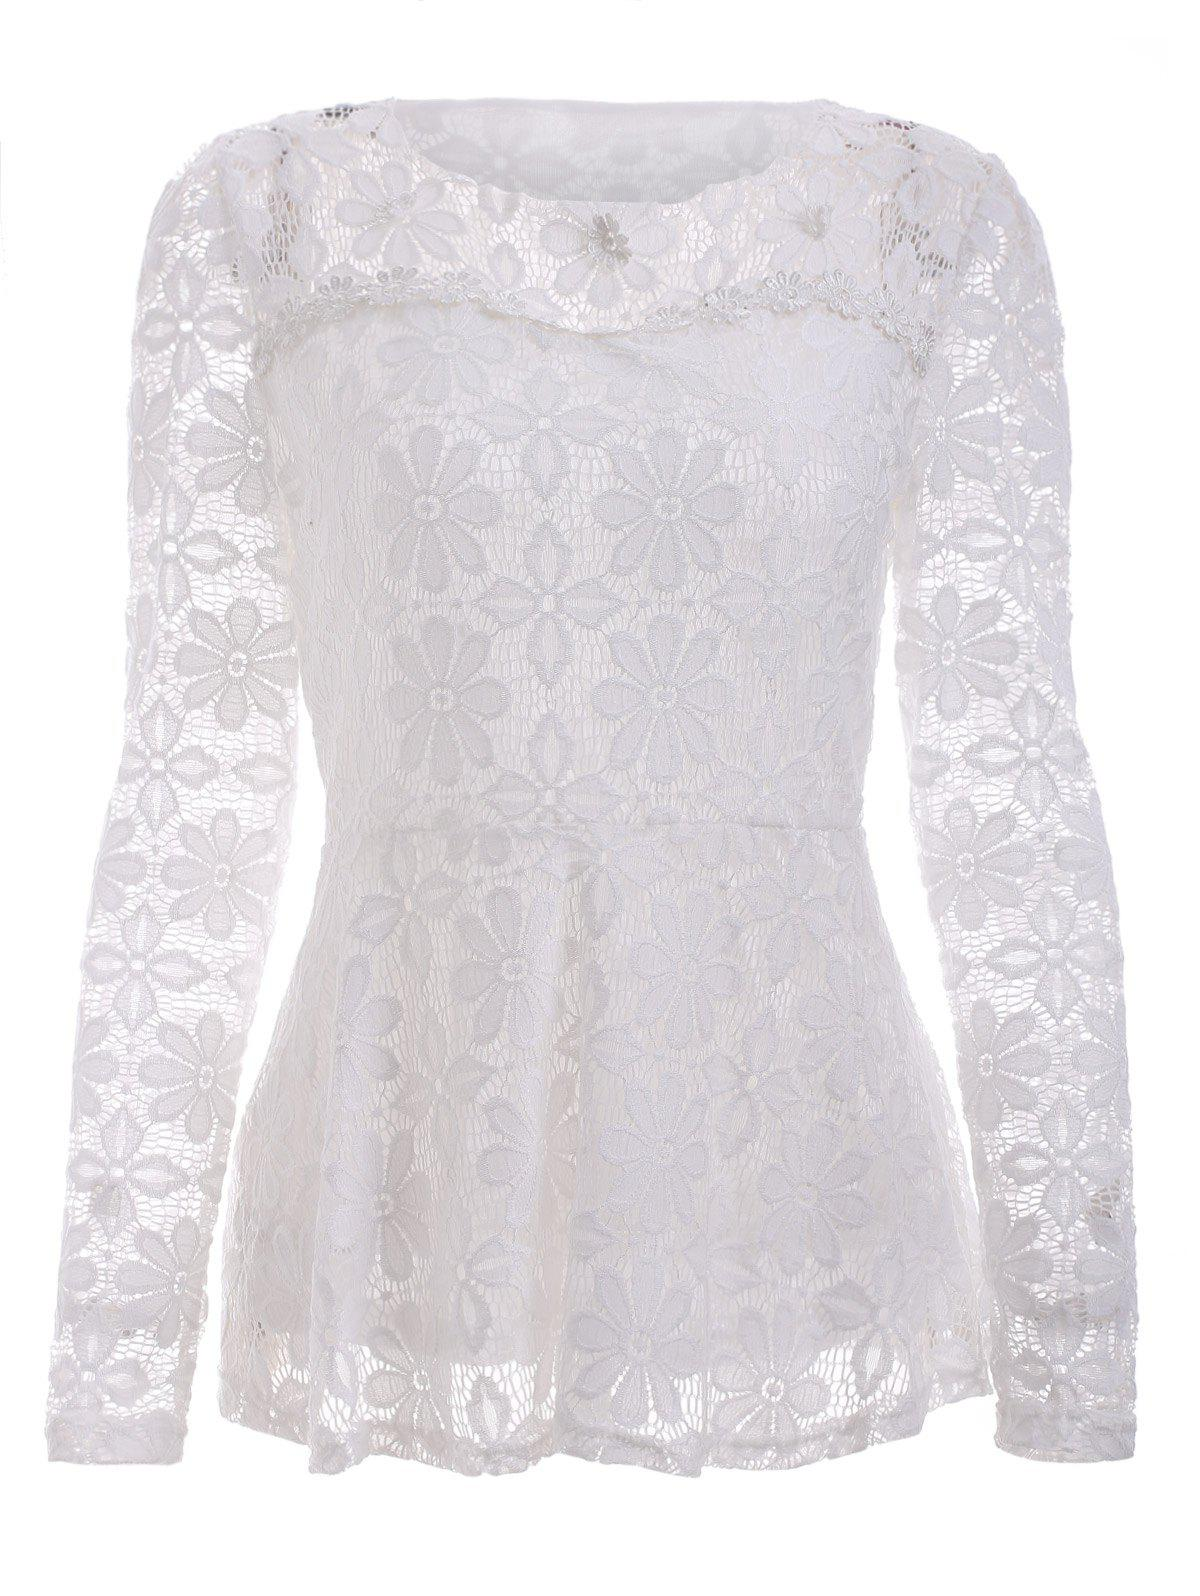 Trendy Long Sleeve Floral Embroidered White Lace Blouse - WHITE 5XL